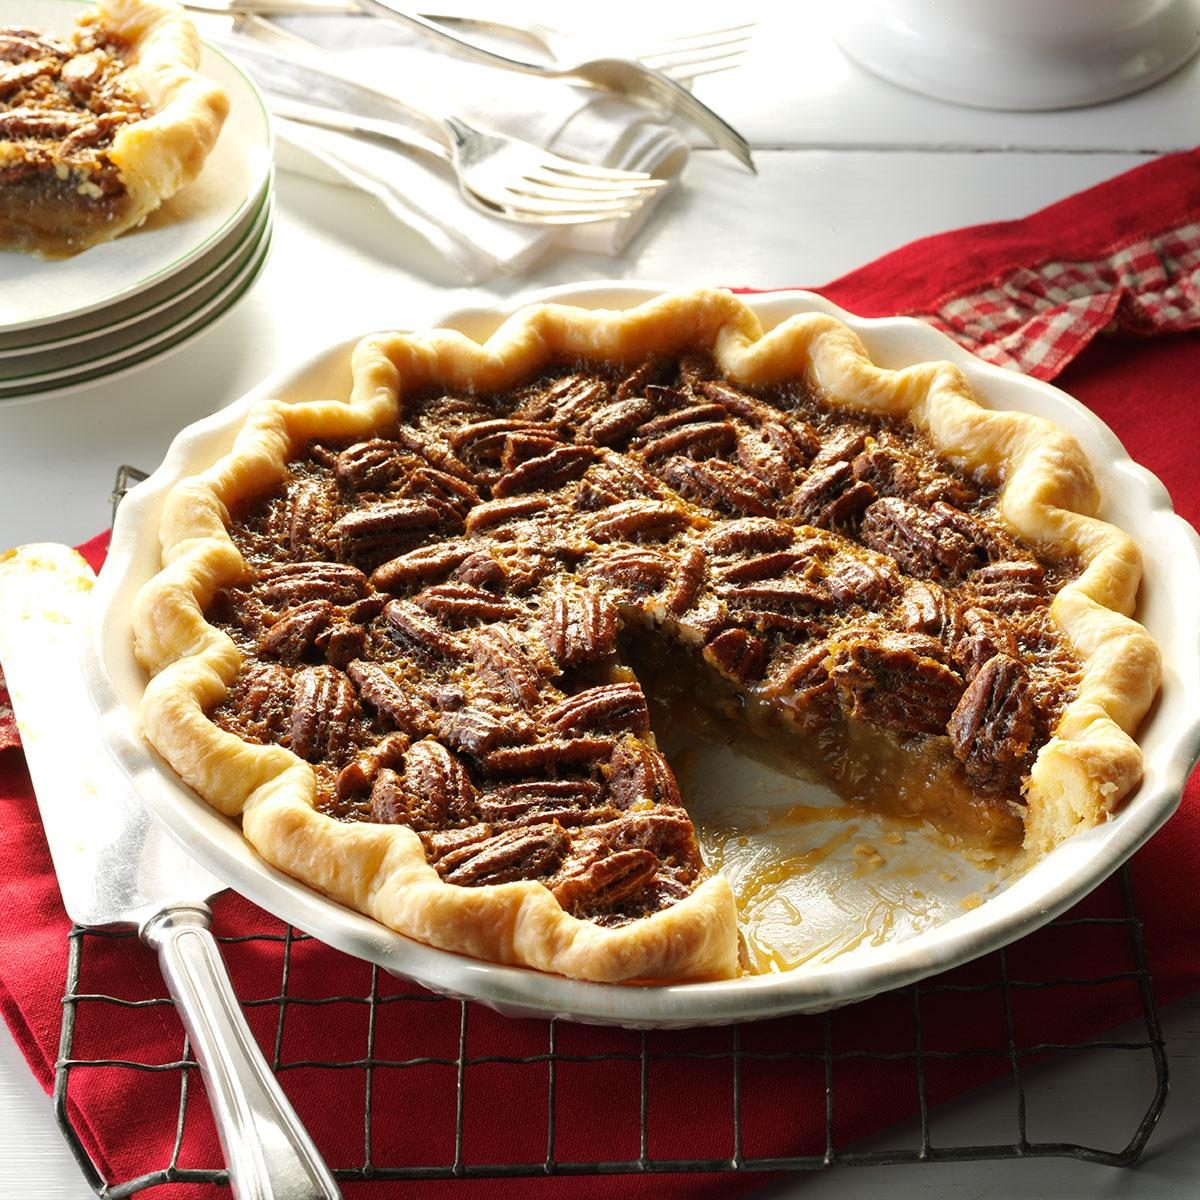 Image Result For Image Result For Pecan Pie Recipe